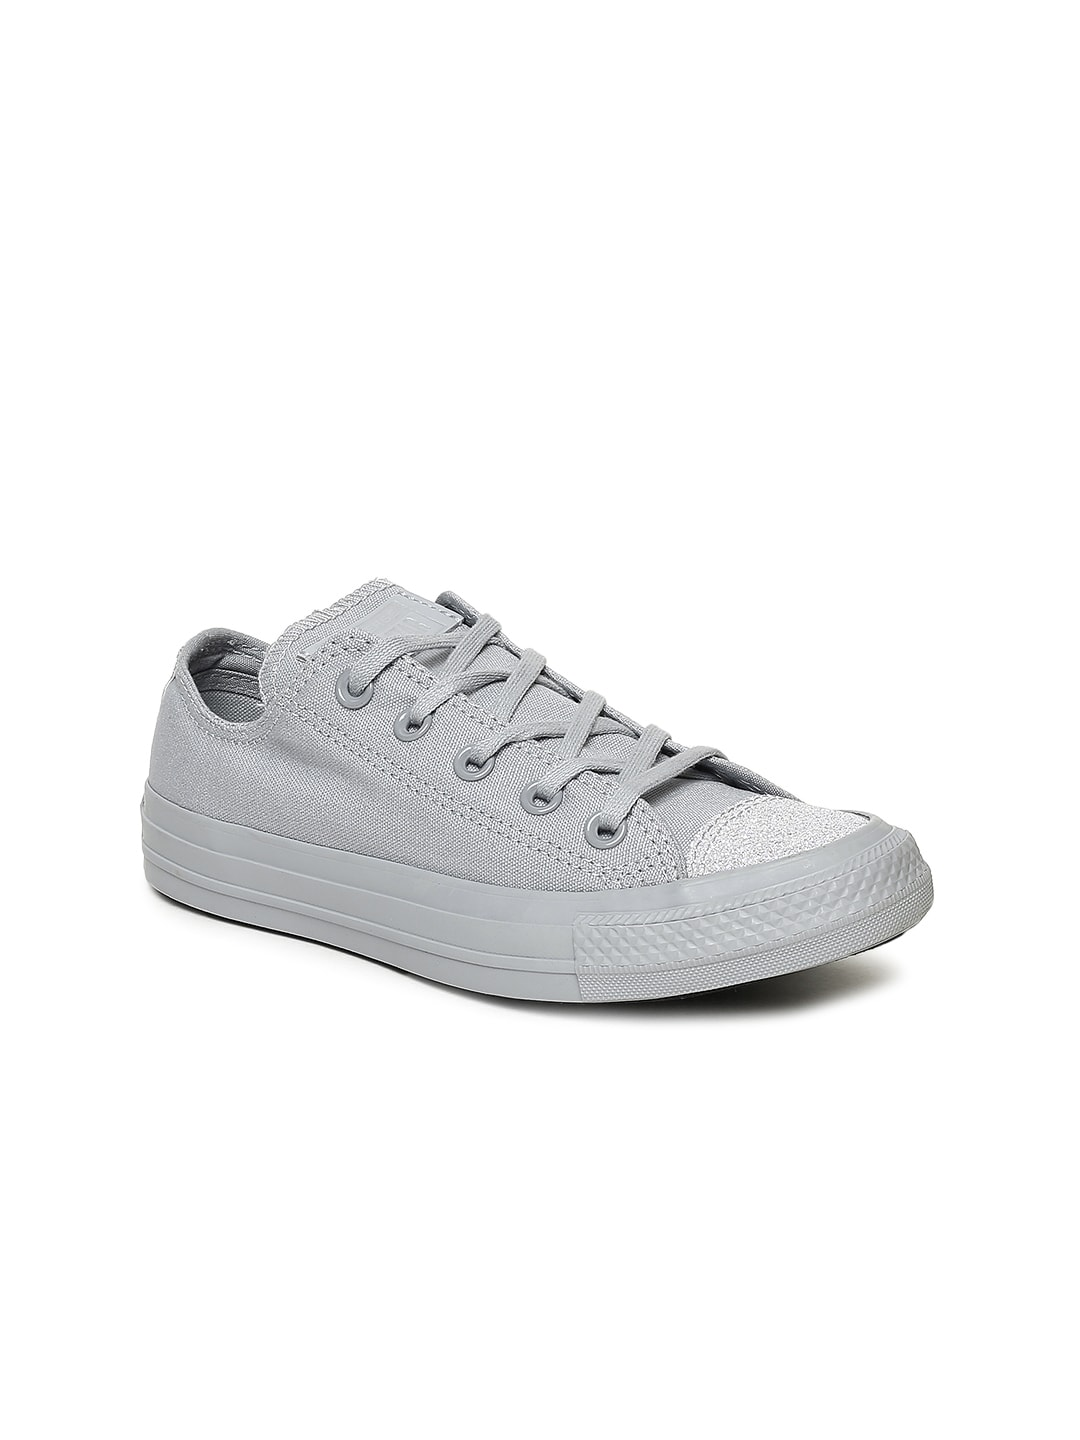 cd59c0471c9 Converse Canvas Shoes